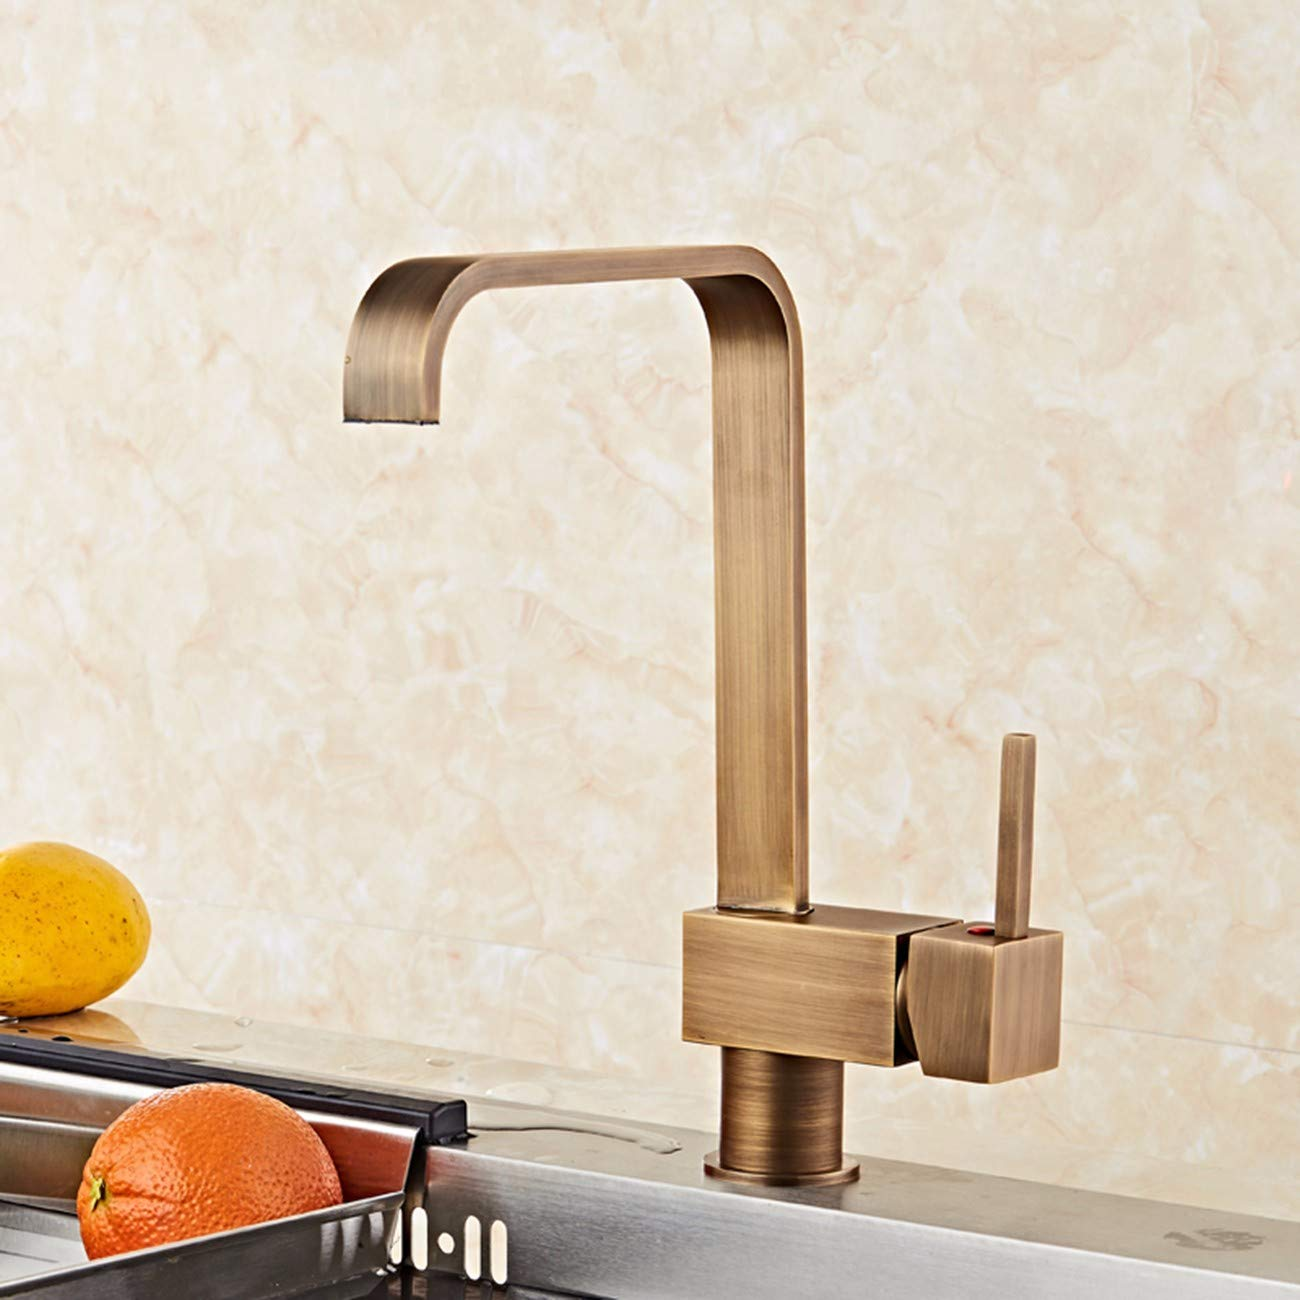 I QPGGP-Kitchen mixer European Copper Ancient Kitchen Faucet,B